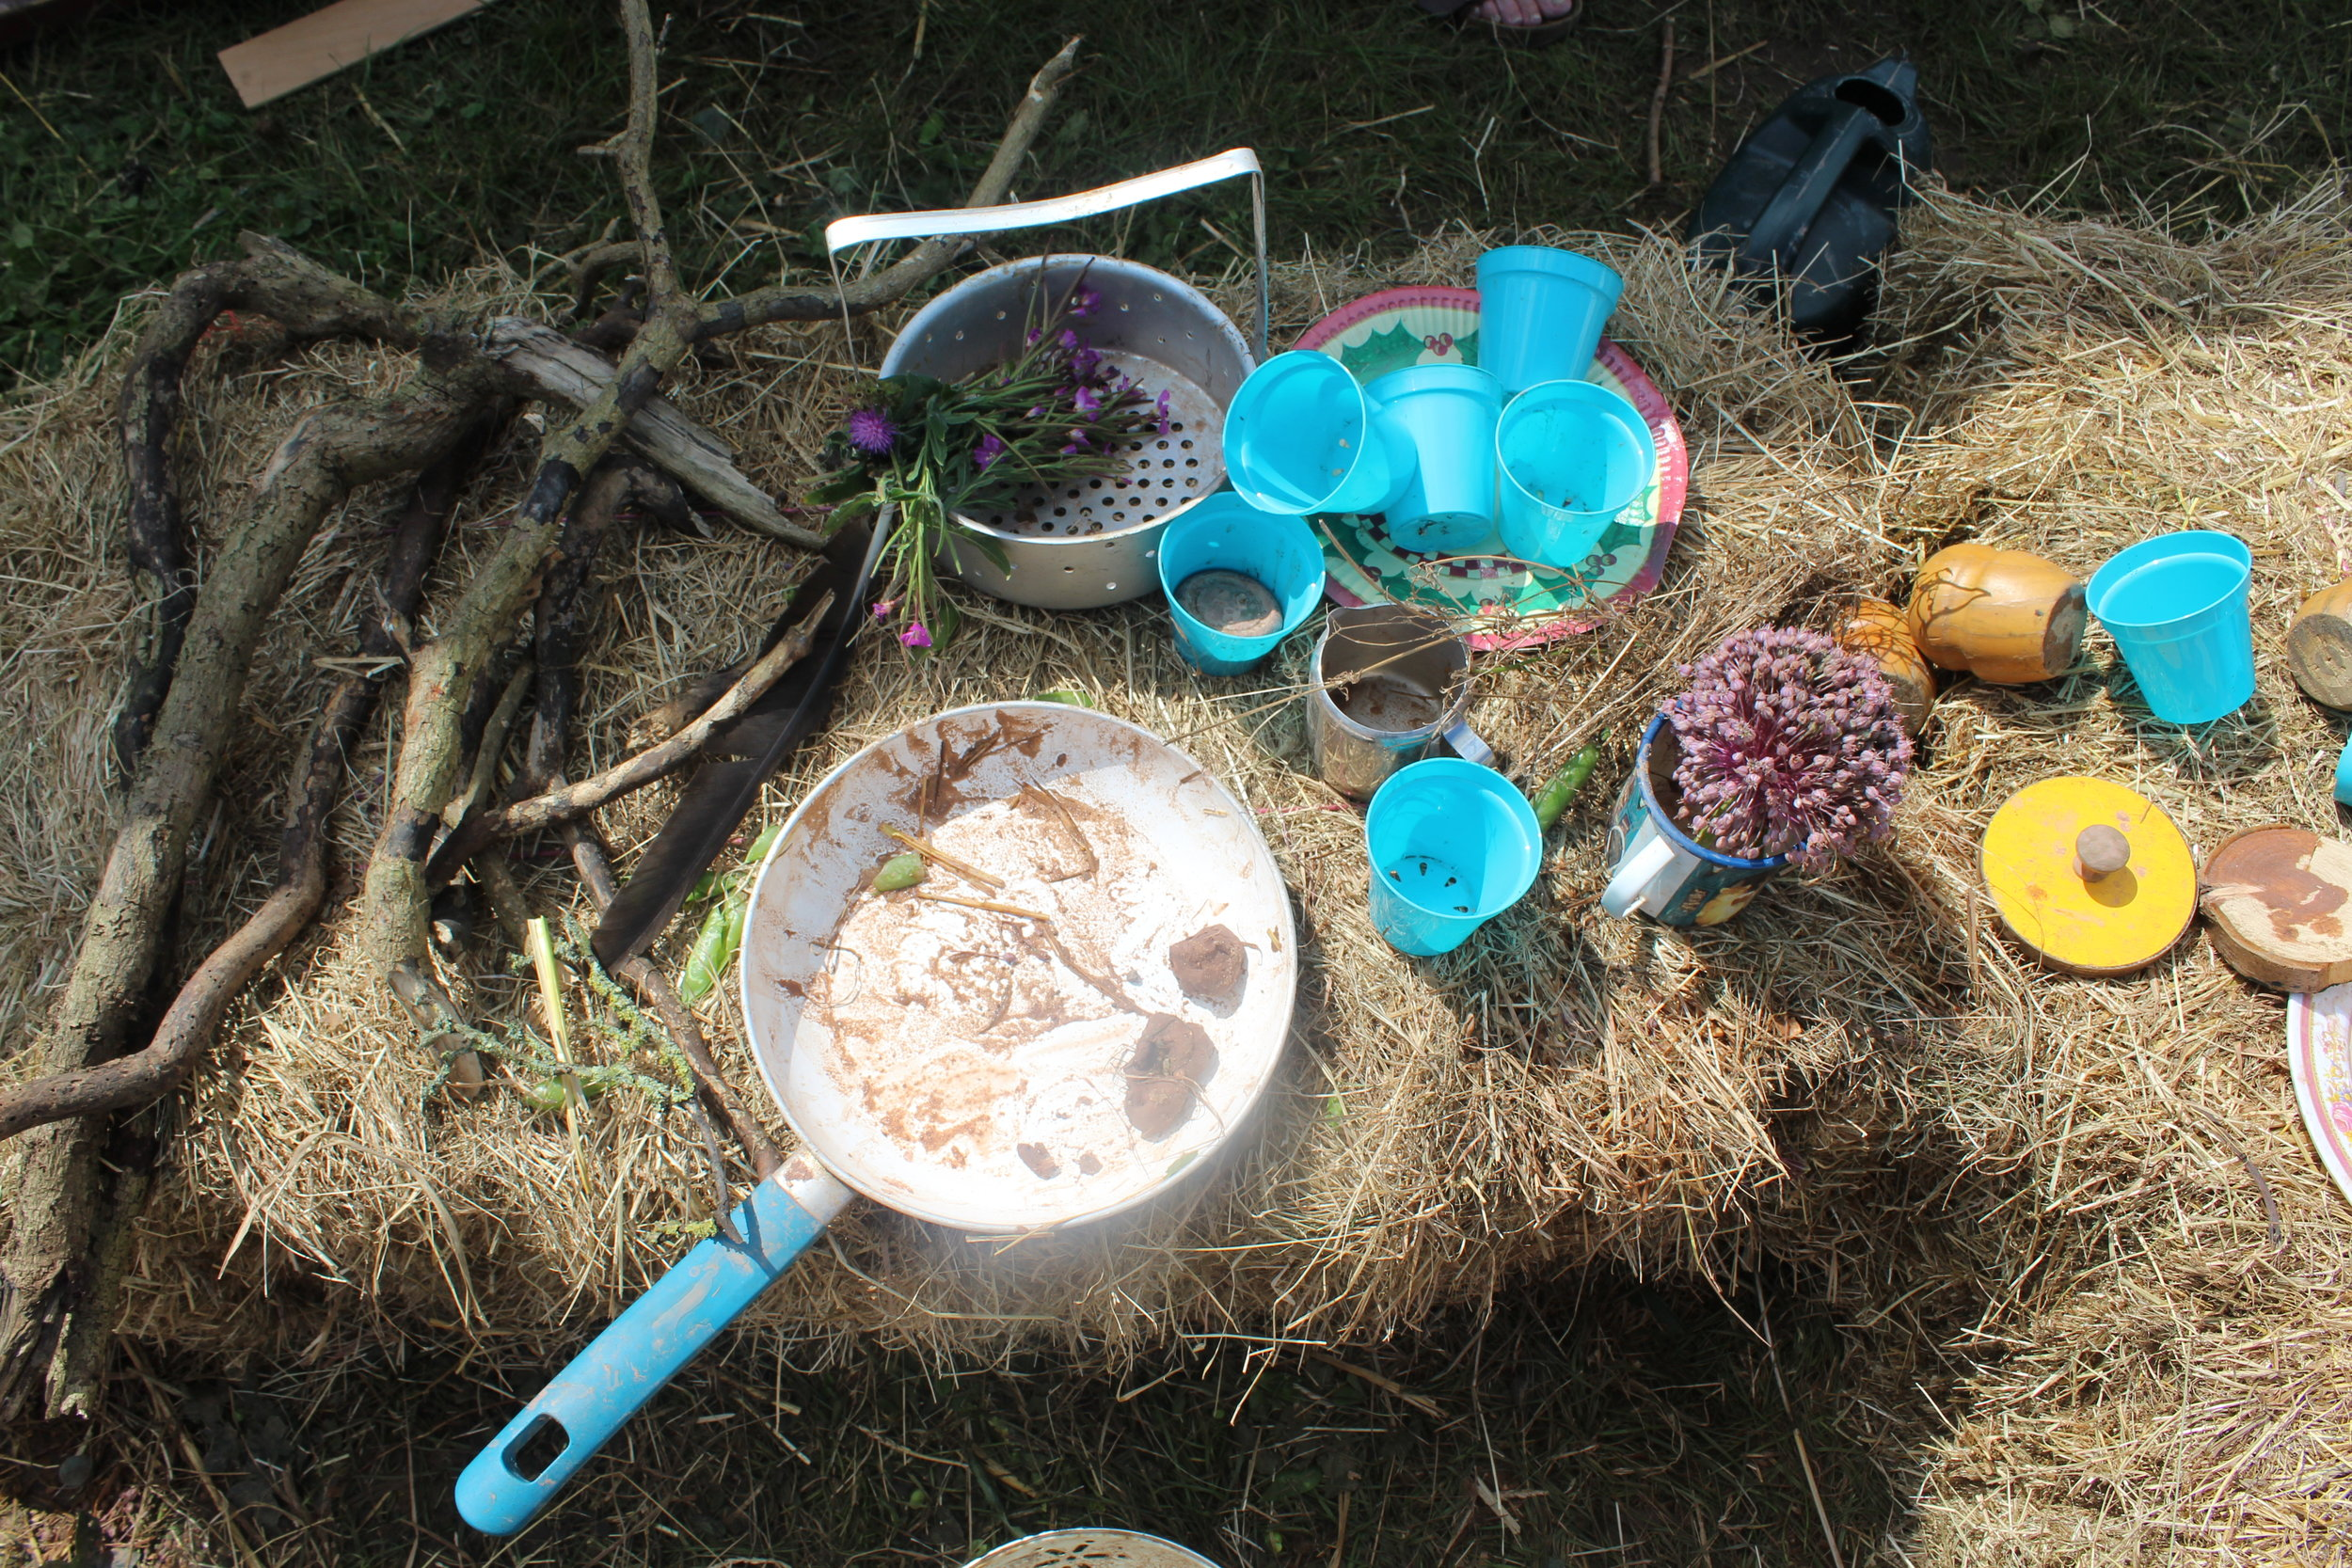 Our impromptu Mud Kitchen at Fieldview Festival 2017